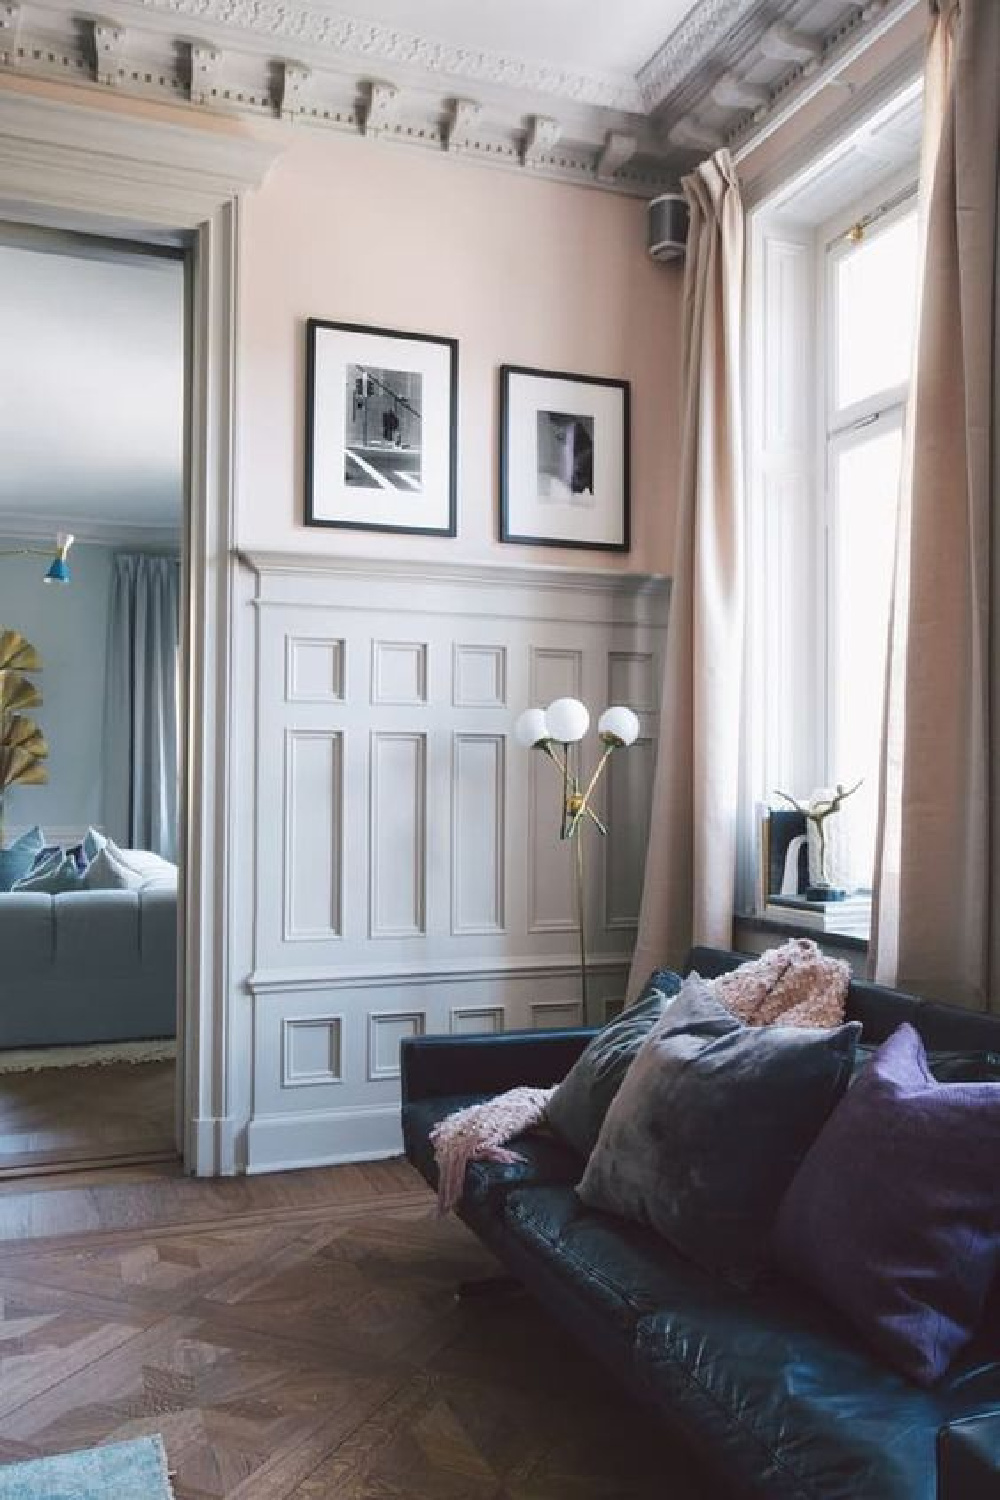 Farrow and Ball Pink Ground in a European home with parquet wood floor and traditional paneled walls.